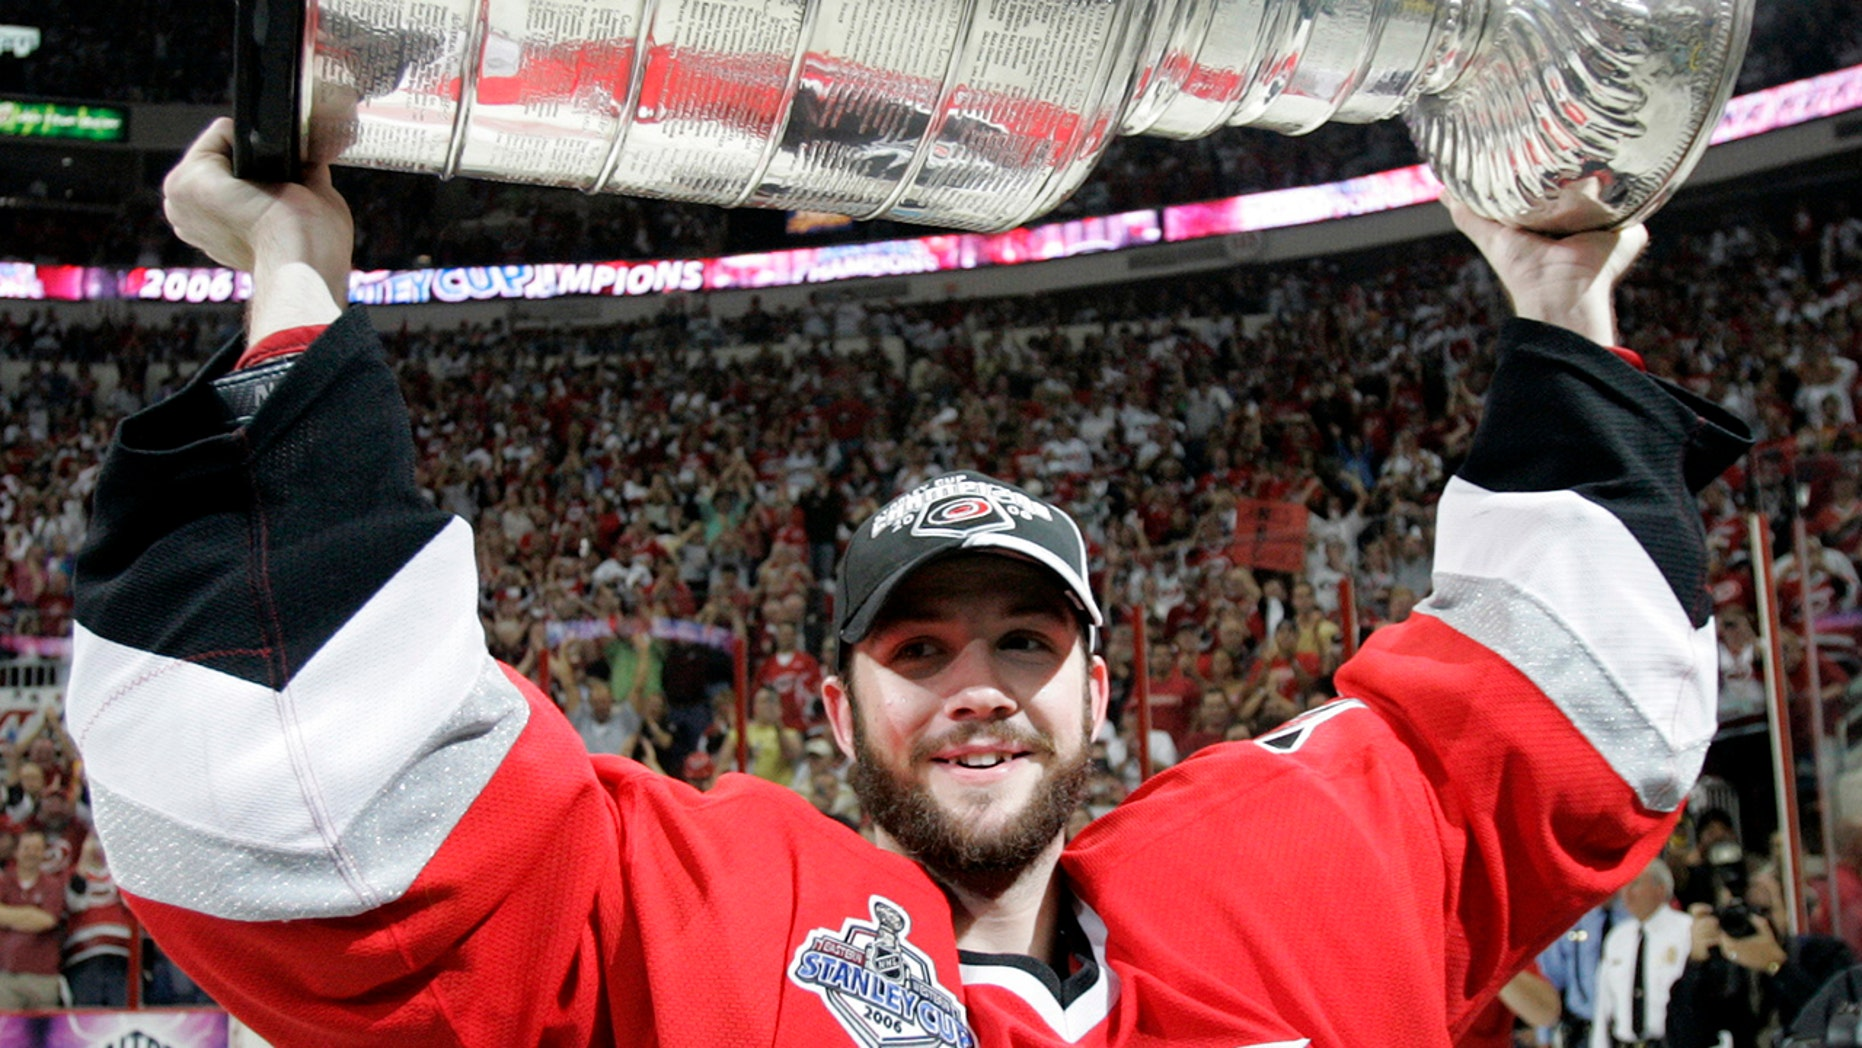 """FILE - In this June 19, 2006, file photo, Carolina Hurricanes goaltender Cam Ward hoists the Stanley Cup after the Hurricanes defeated the Edmonton Oilers 3-1 in Game 7 of the Stanley Cup hockey finals in Raleigh, N.C. Goalie Cam Ward has signed a one-day contract with the Carolina Hurricanes and is retiring as a member of the team he helped lead to a Stanley Cup. General manager Don Waddell announced the signing and retirement Wednesday, Aug. 28, 2019, calling Ward """"a cornerstone for this organization for more than a decade.""""(AP Photo/Ann Heisenfelt, File)"""